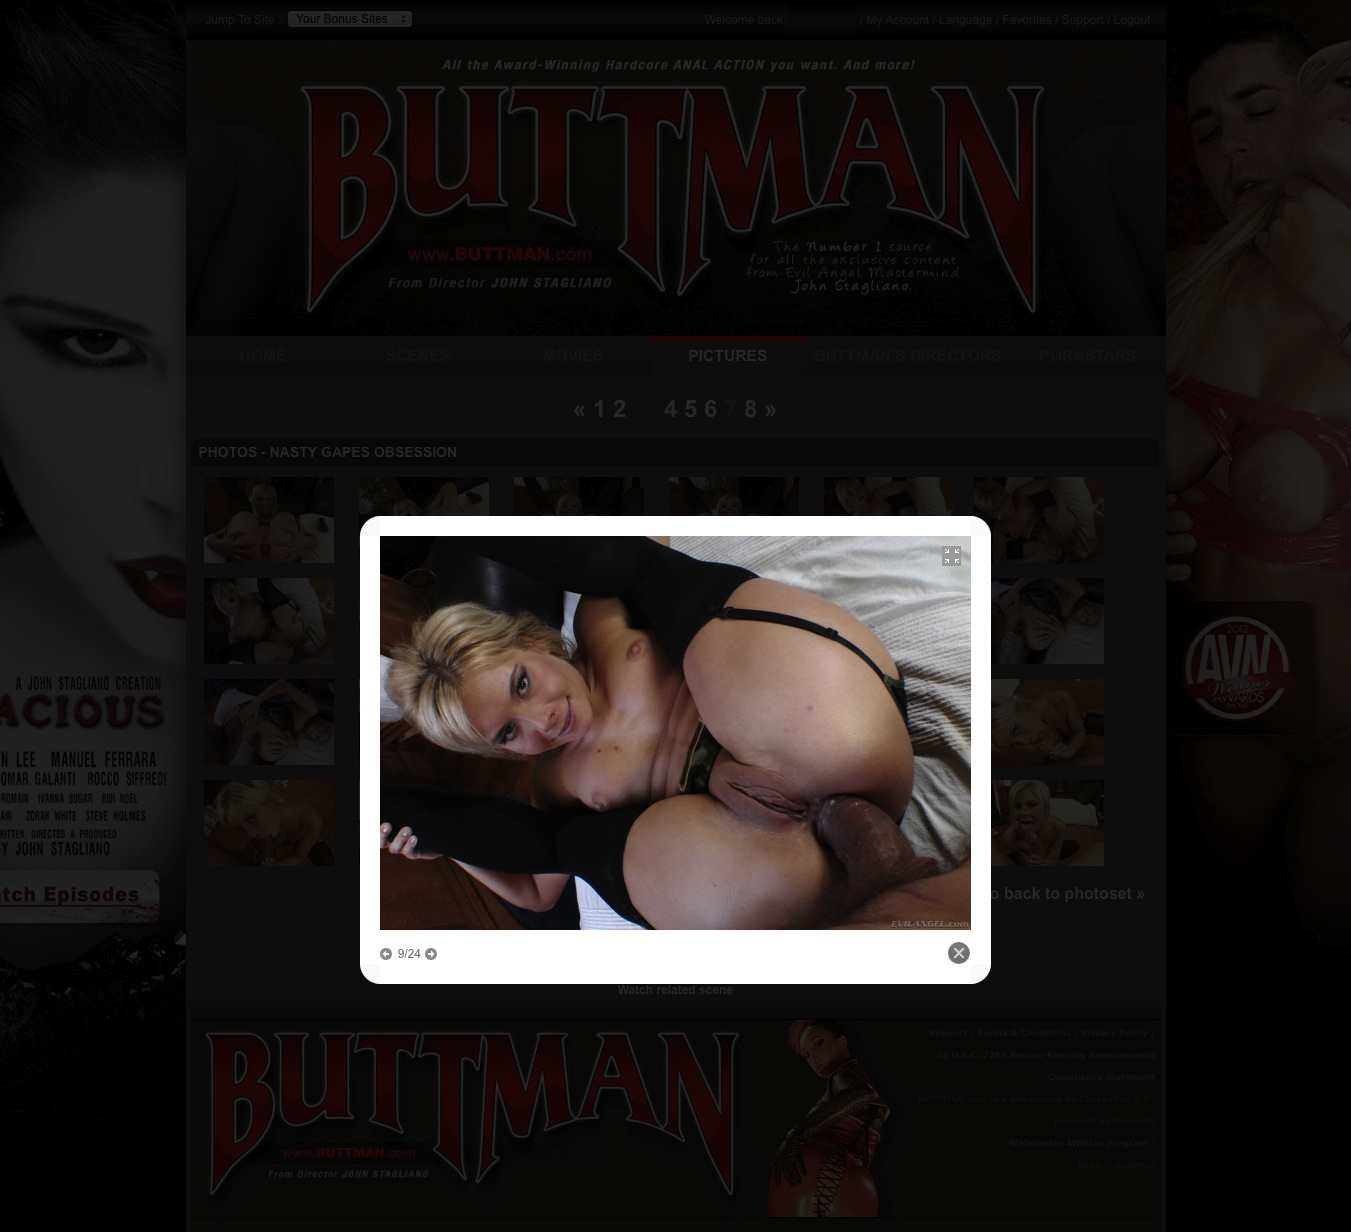 Buttman photos